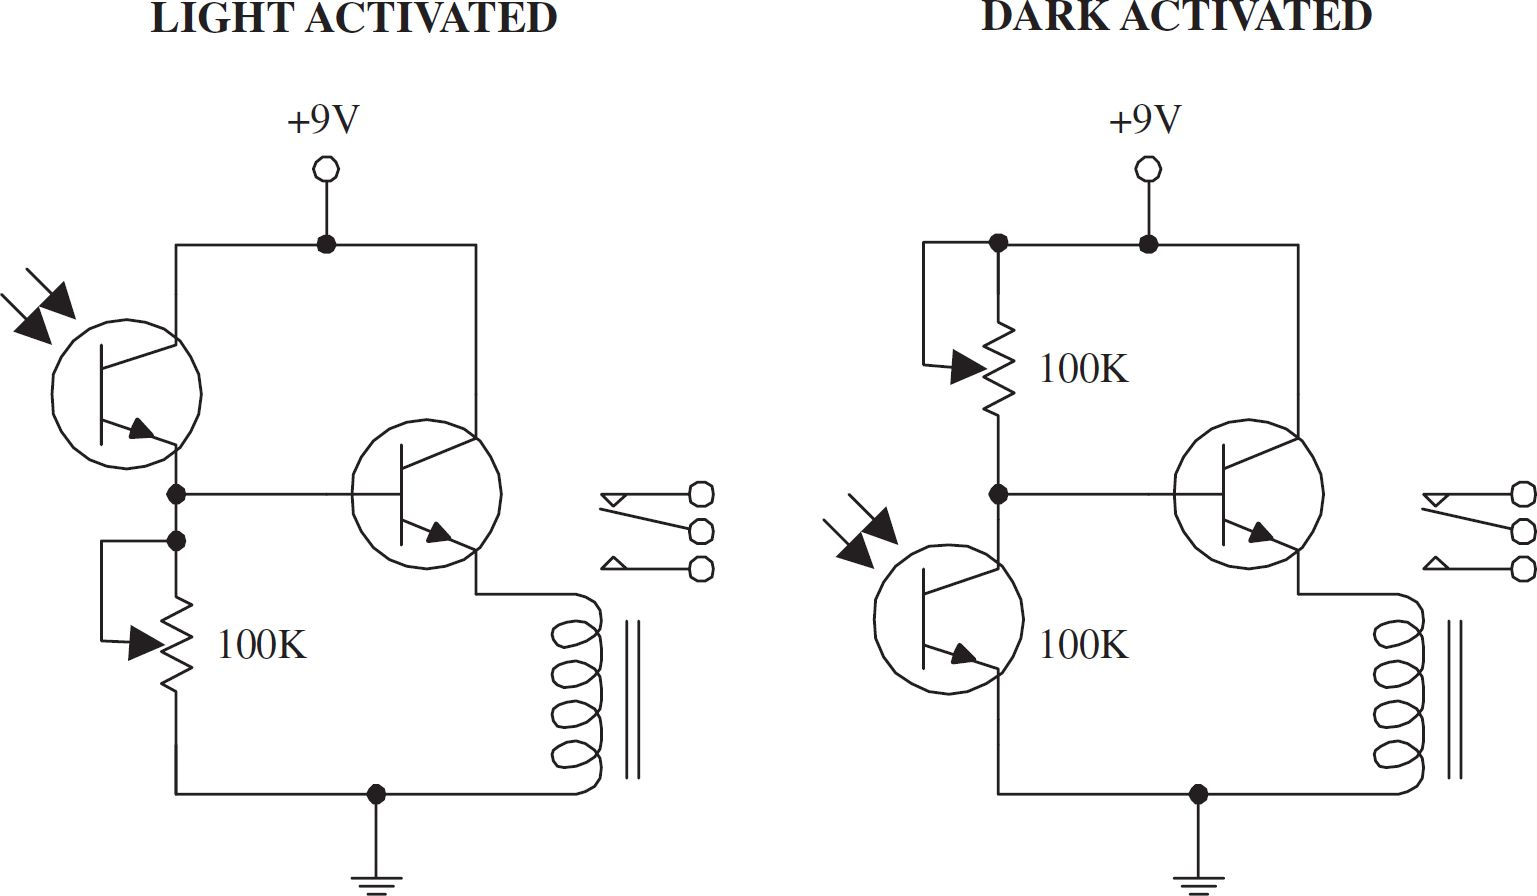 Light Activated Scr Applications Shelly Lighting Lascrlight Electronic Circuits And Diagram Relay